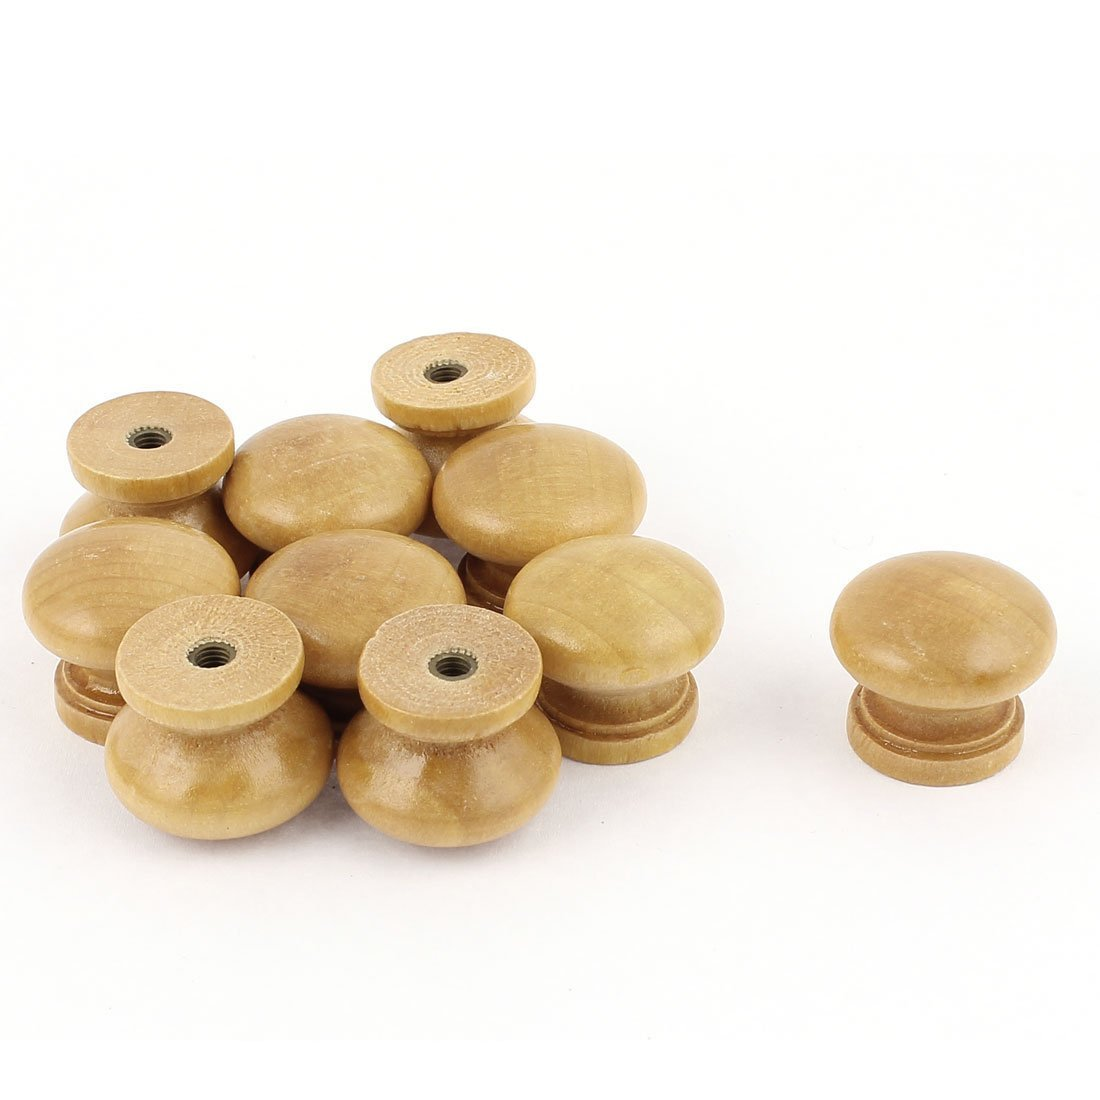 uxcell Drawer Cabinet Closet Wood Round Knob Pull Handle 23x19mm 10pcs SYNCE003842